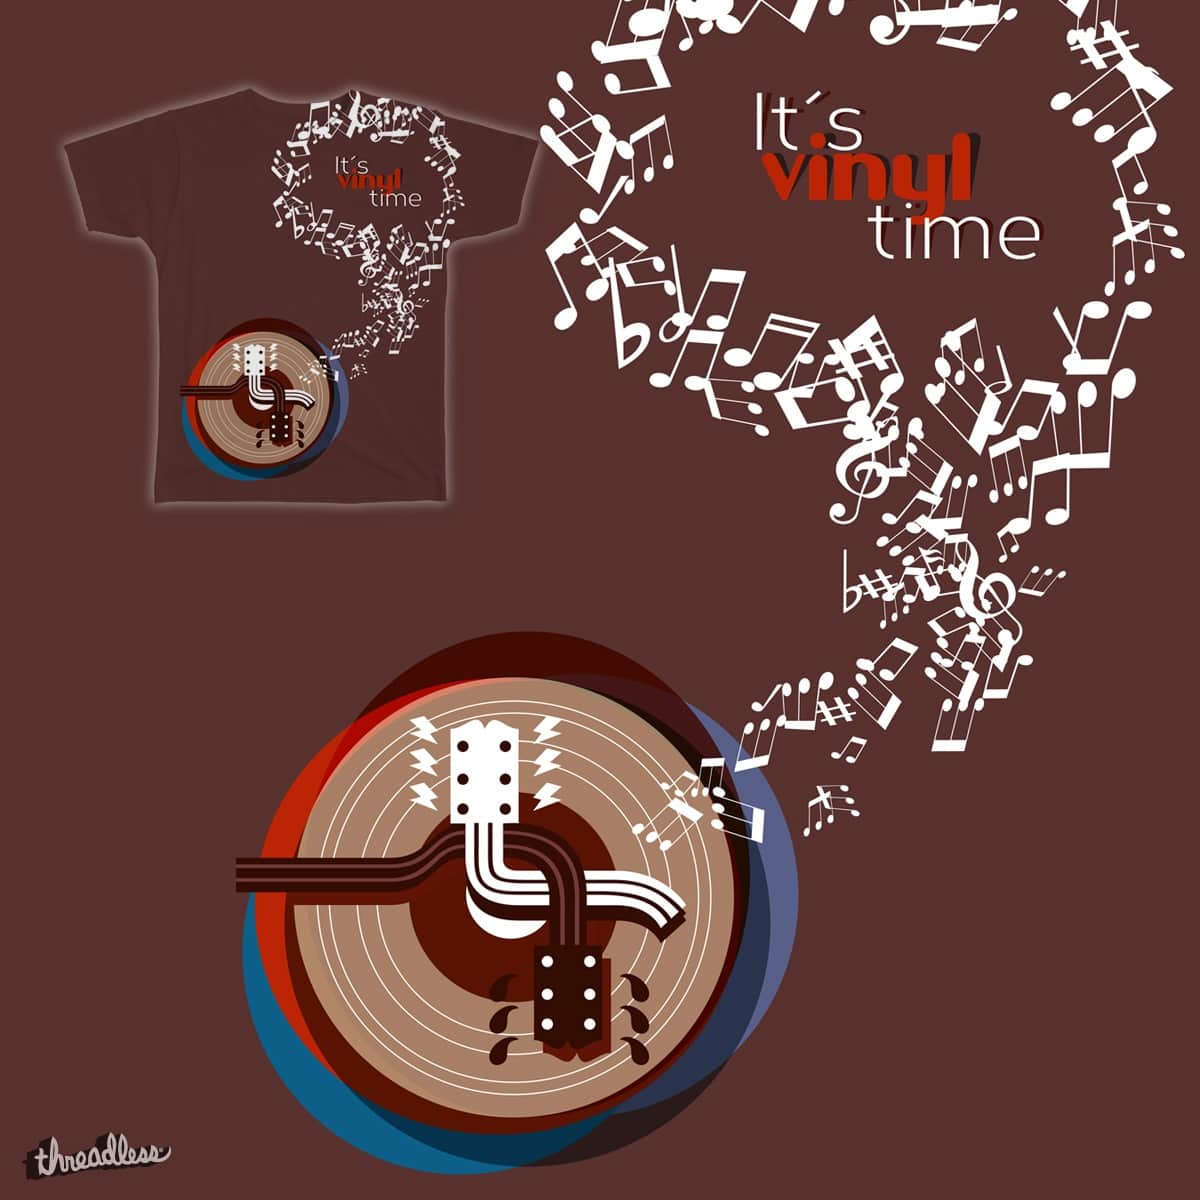 It´s vinyl time by xavidiazg on Threadless